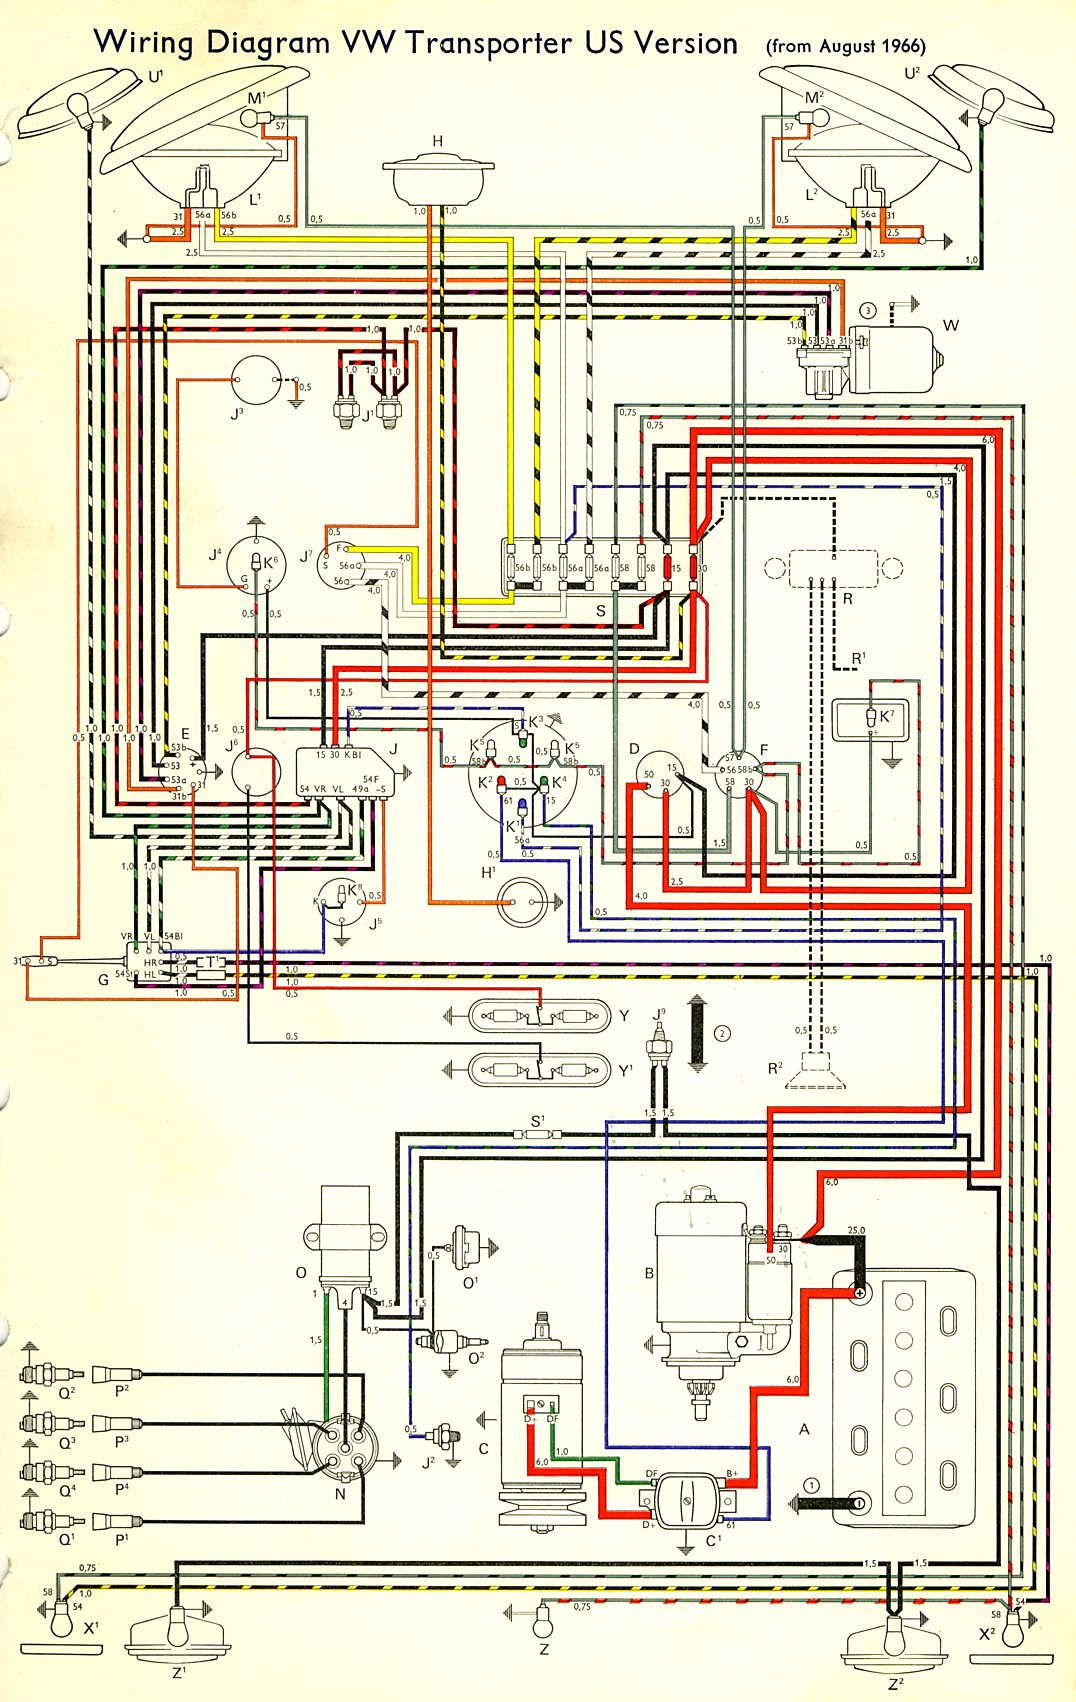 thesamba com type 2 wiring diagrams rh thesamba com 67 vw bug wiring diagram 1967 VW Beetle Turn Signal Switch